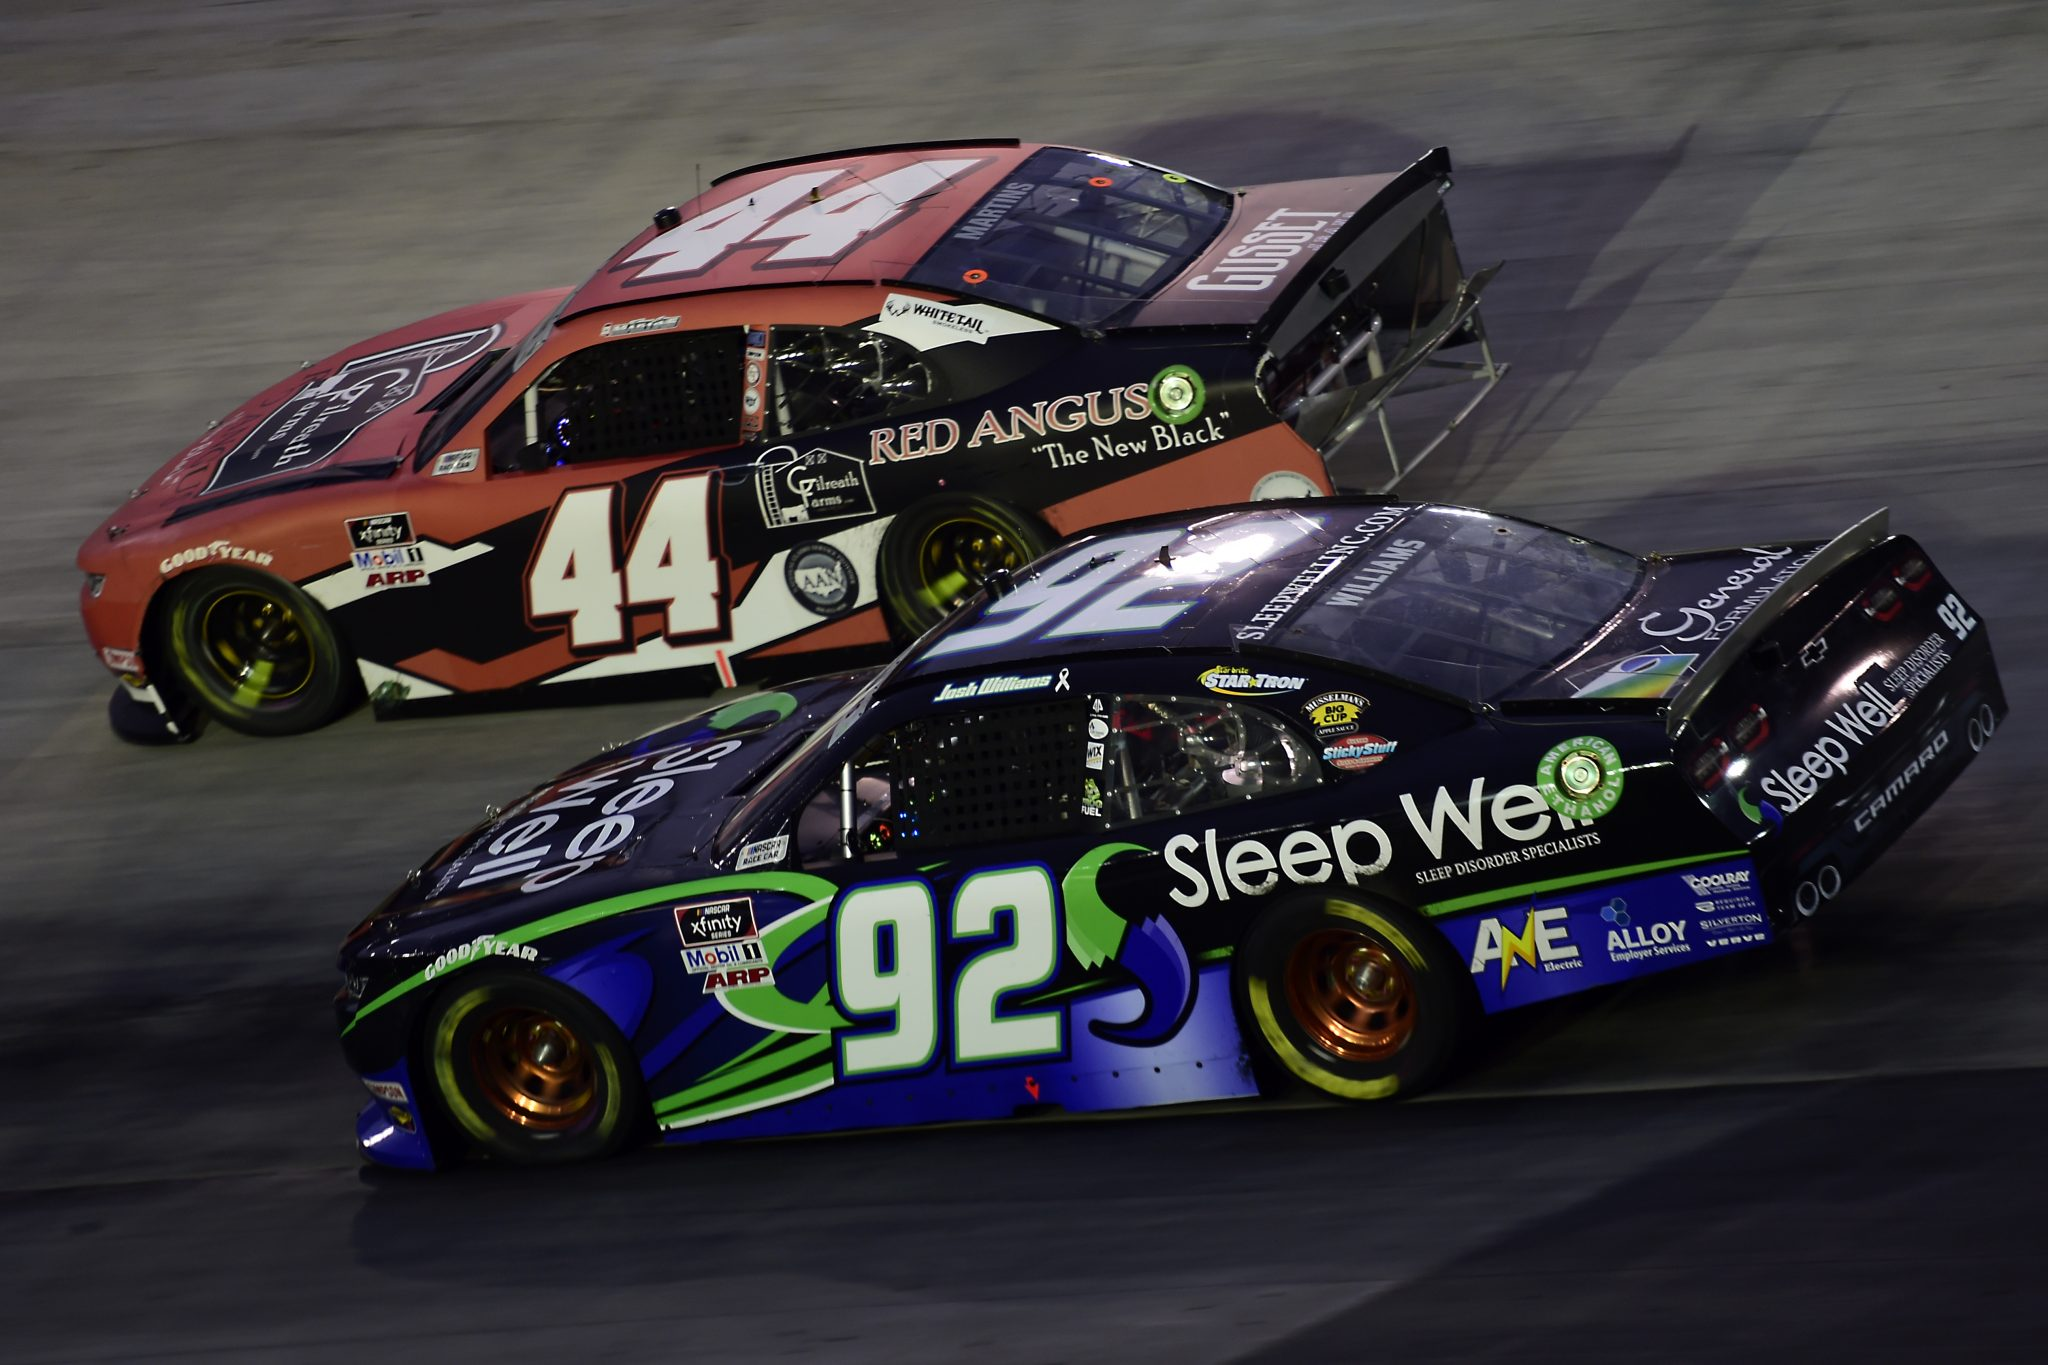 BRISTOL, TENNESSEE - SEPTEMBER 18: Josh Williams, driver of the #92 Sleep Well Chevrolet, and Tommy Joe Martins, driver of the #44 Gilreath Farms Red Angus Chevrolet, race during the NASCAR Xfinity Series Food City 300 at Bristol Motor Speedway on September 18, 2020 in Bristol, Tennessee. (Photo by Jared C. Tilton/Getty Images) | Getty Images